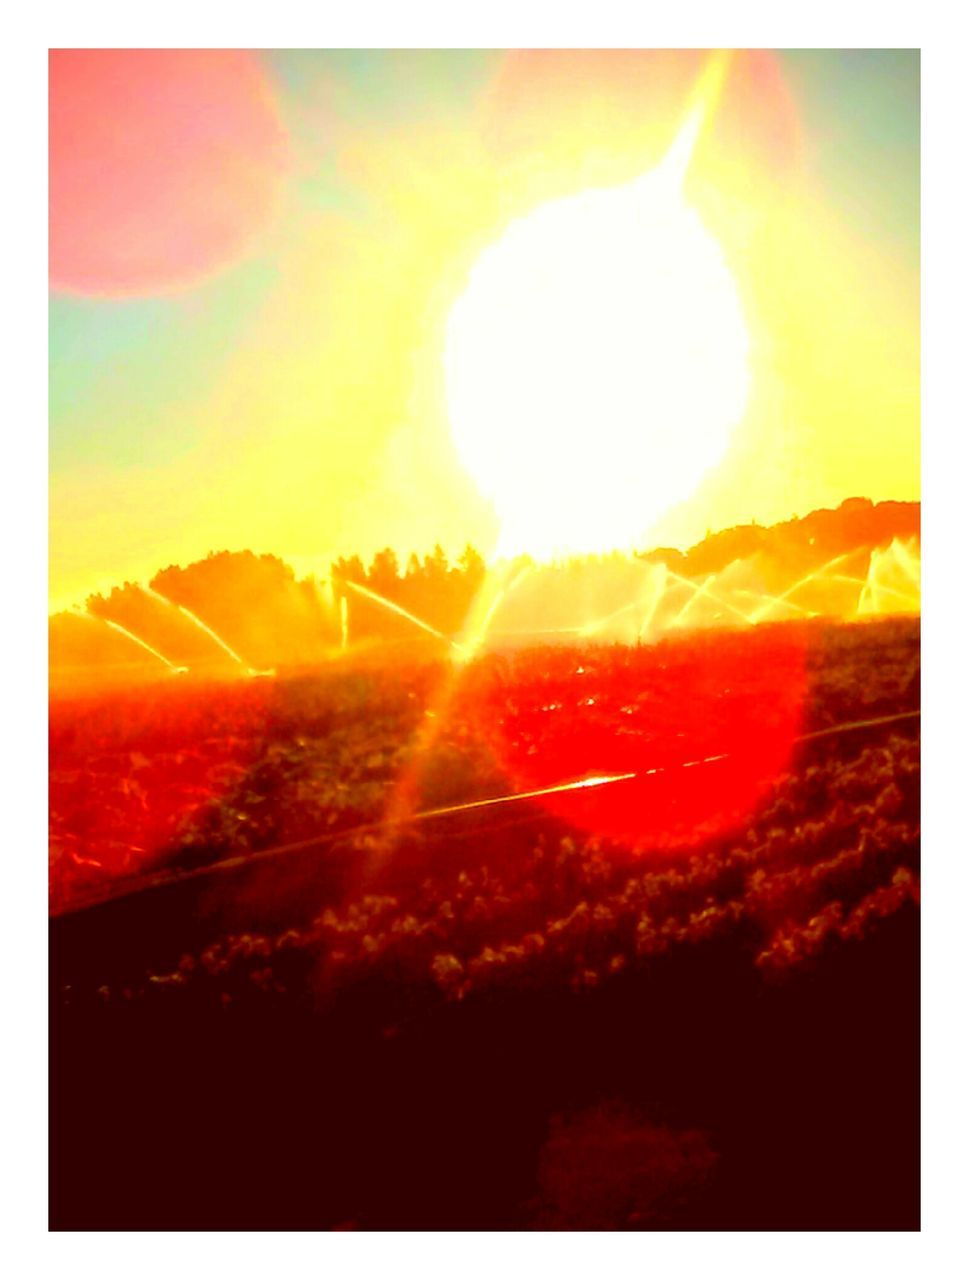 sunset, sun, sunbeam, nature, scenics, sky, idyllic, tranquil scene, orange color, beauty in nature, sunlight, majestic, lens flare, bright, tranquility, landscape, no people, outdoors, awe, silhouette, tree, day